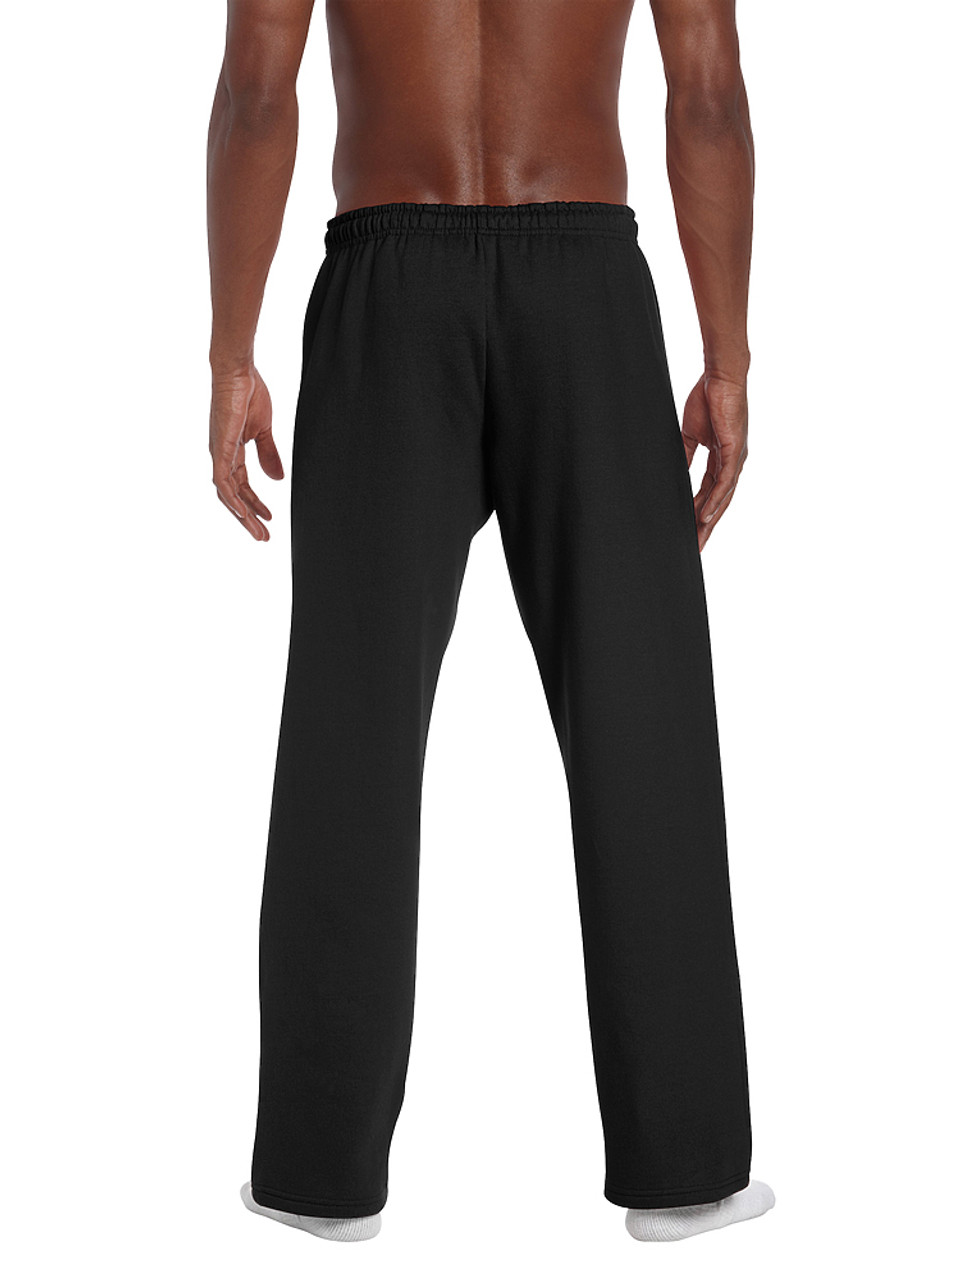 Black - Back, 18400 Gildan No Pocket / Open Bottom Pants | T-shirt.ca